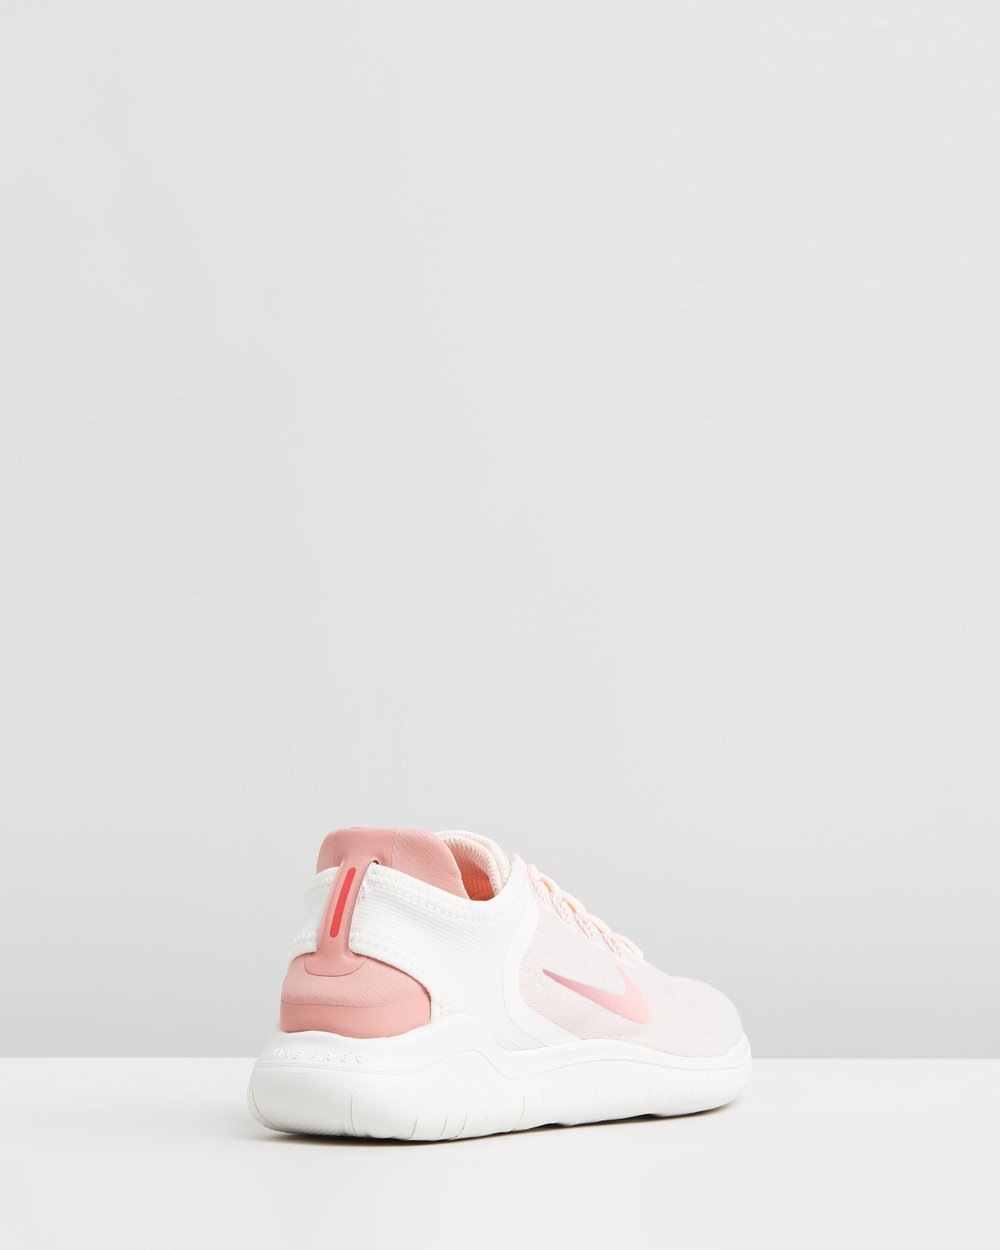 new arrival 584a8 c6d4c Free Run 2018 - Women s by Nike Online   THE ICONIC   Australia